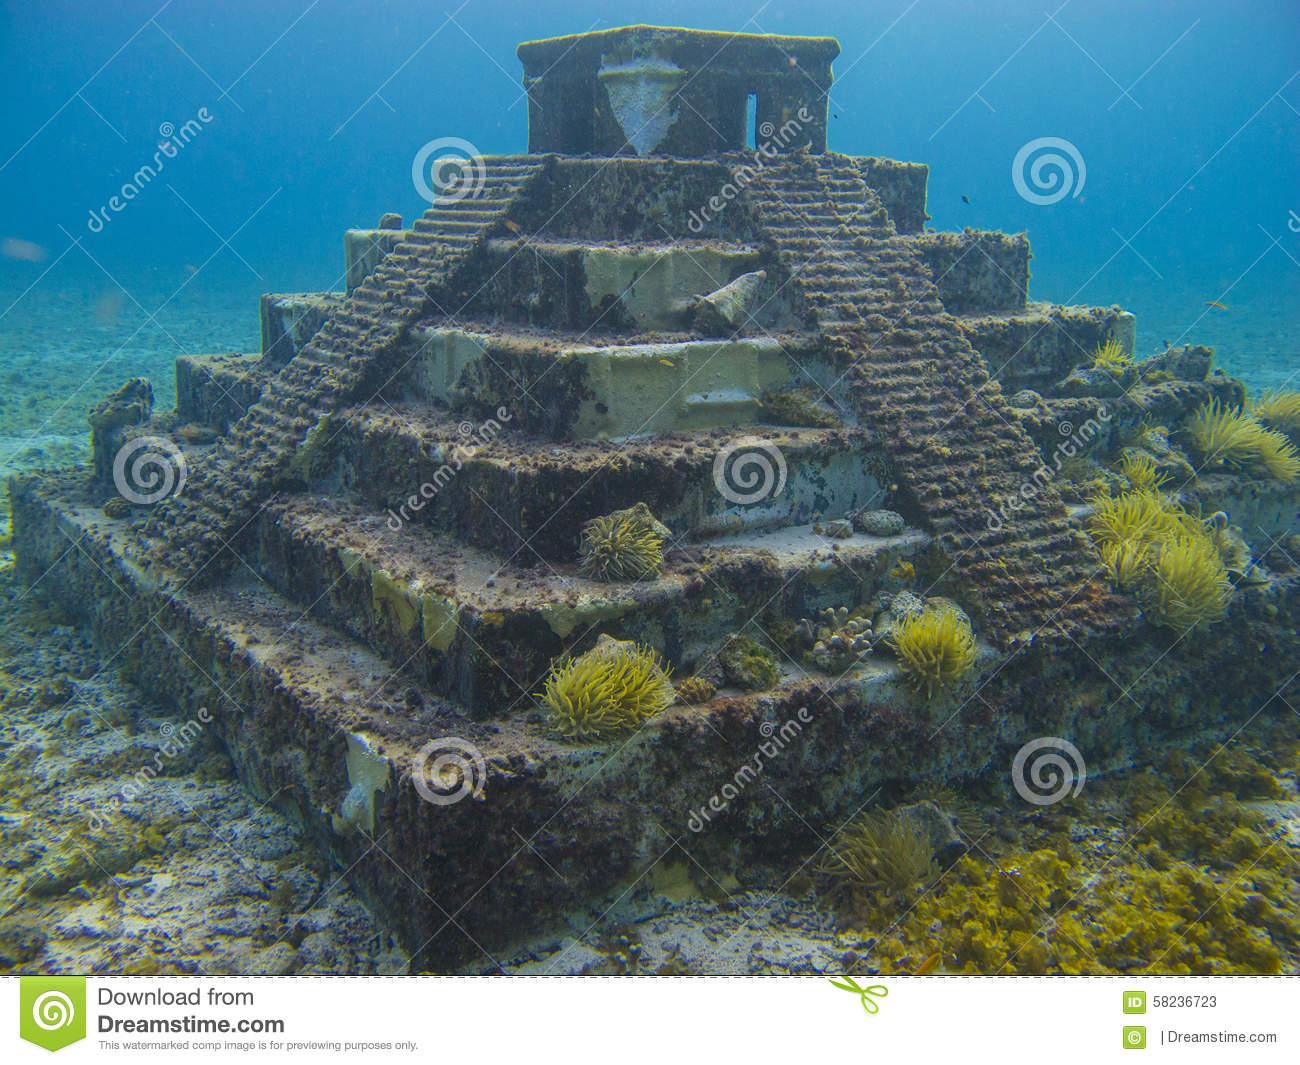 Enclave Flag 296136970 further Lebanon Isis b 8078784 likewise Stock Images Belarus Map Image8549304 furthermore Fordlandia Abandoned City additionally Visions Of Tivoli Italy. on ruins in the united states